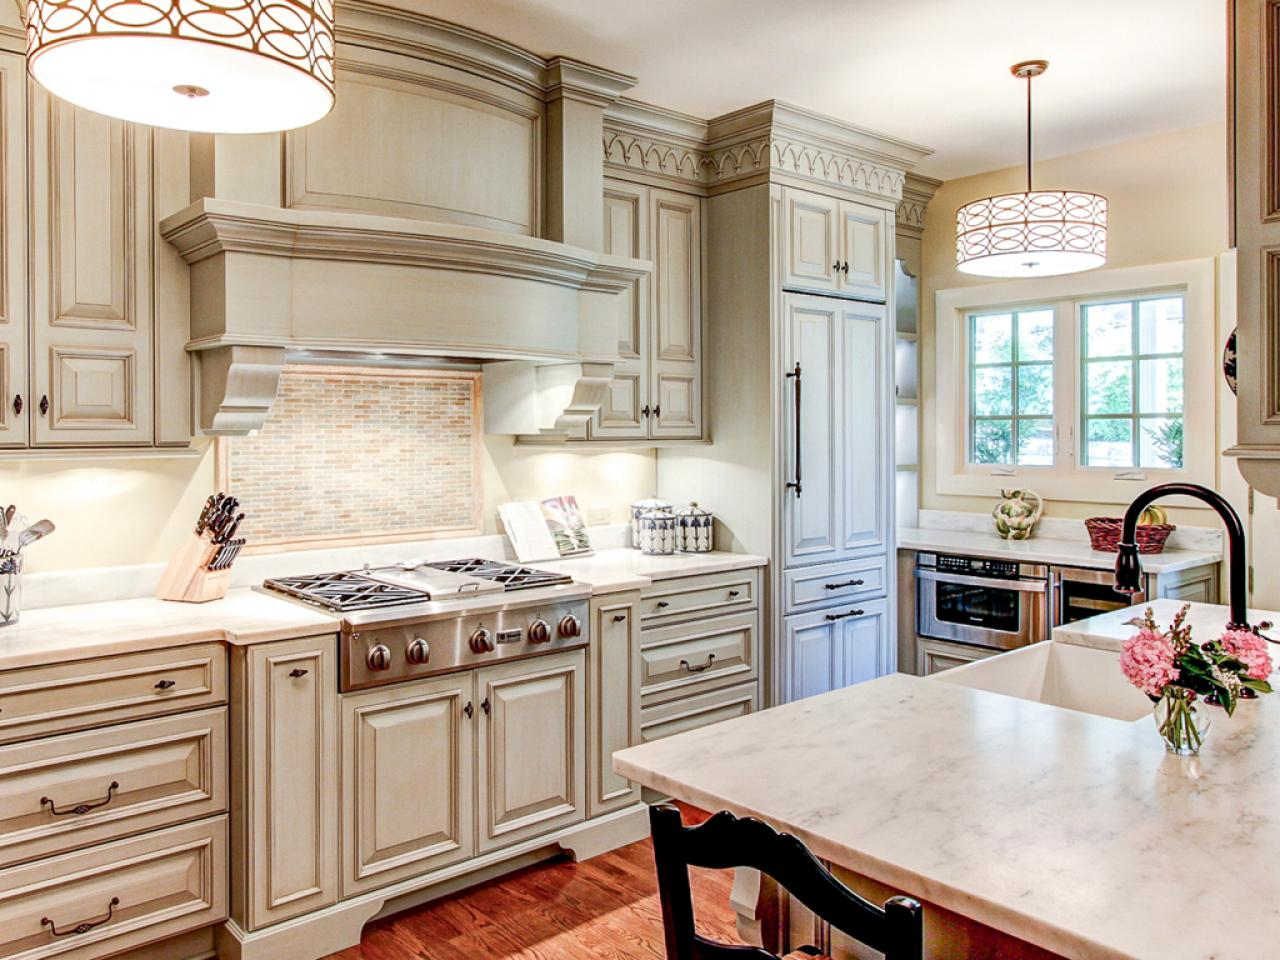 Interior Kitchens And Cabinets best way to paint kitchen cabinets hgtv pictures ideas hgtv